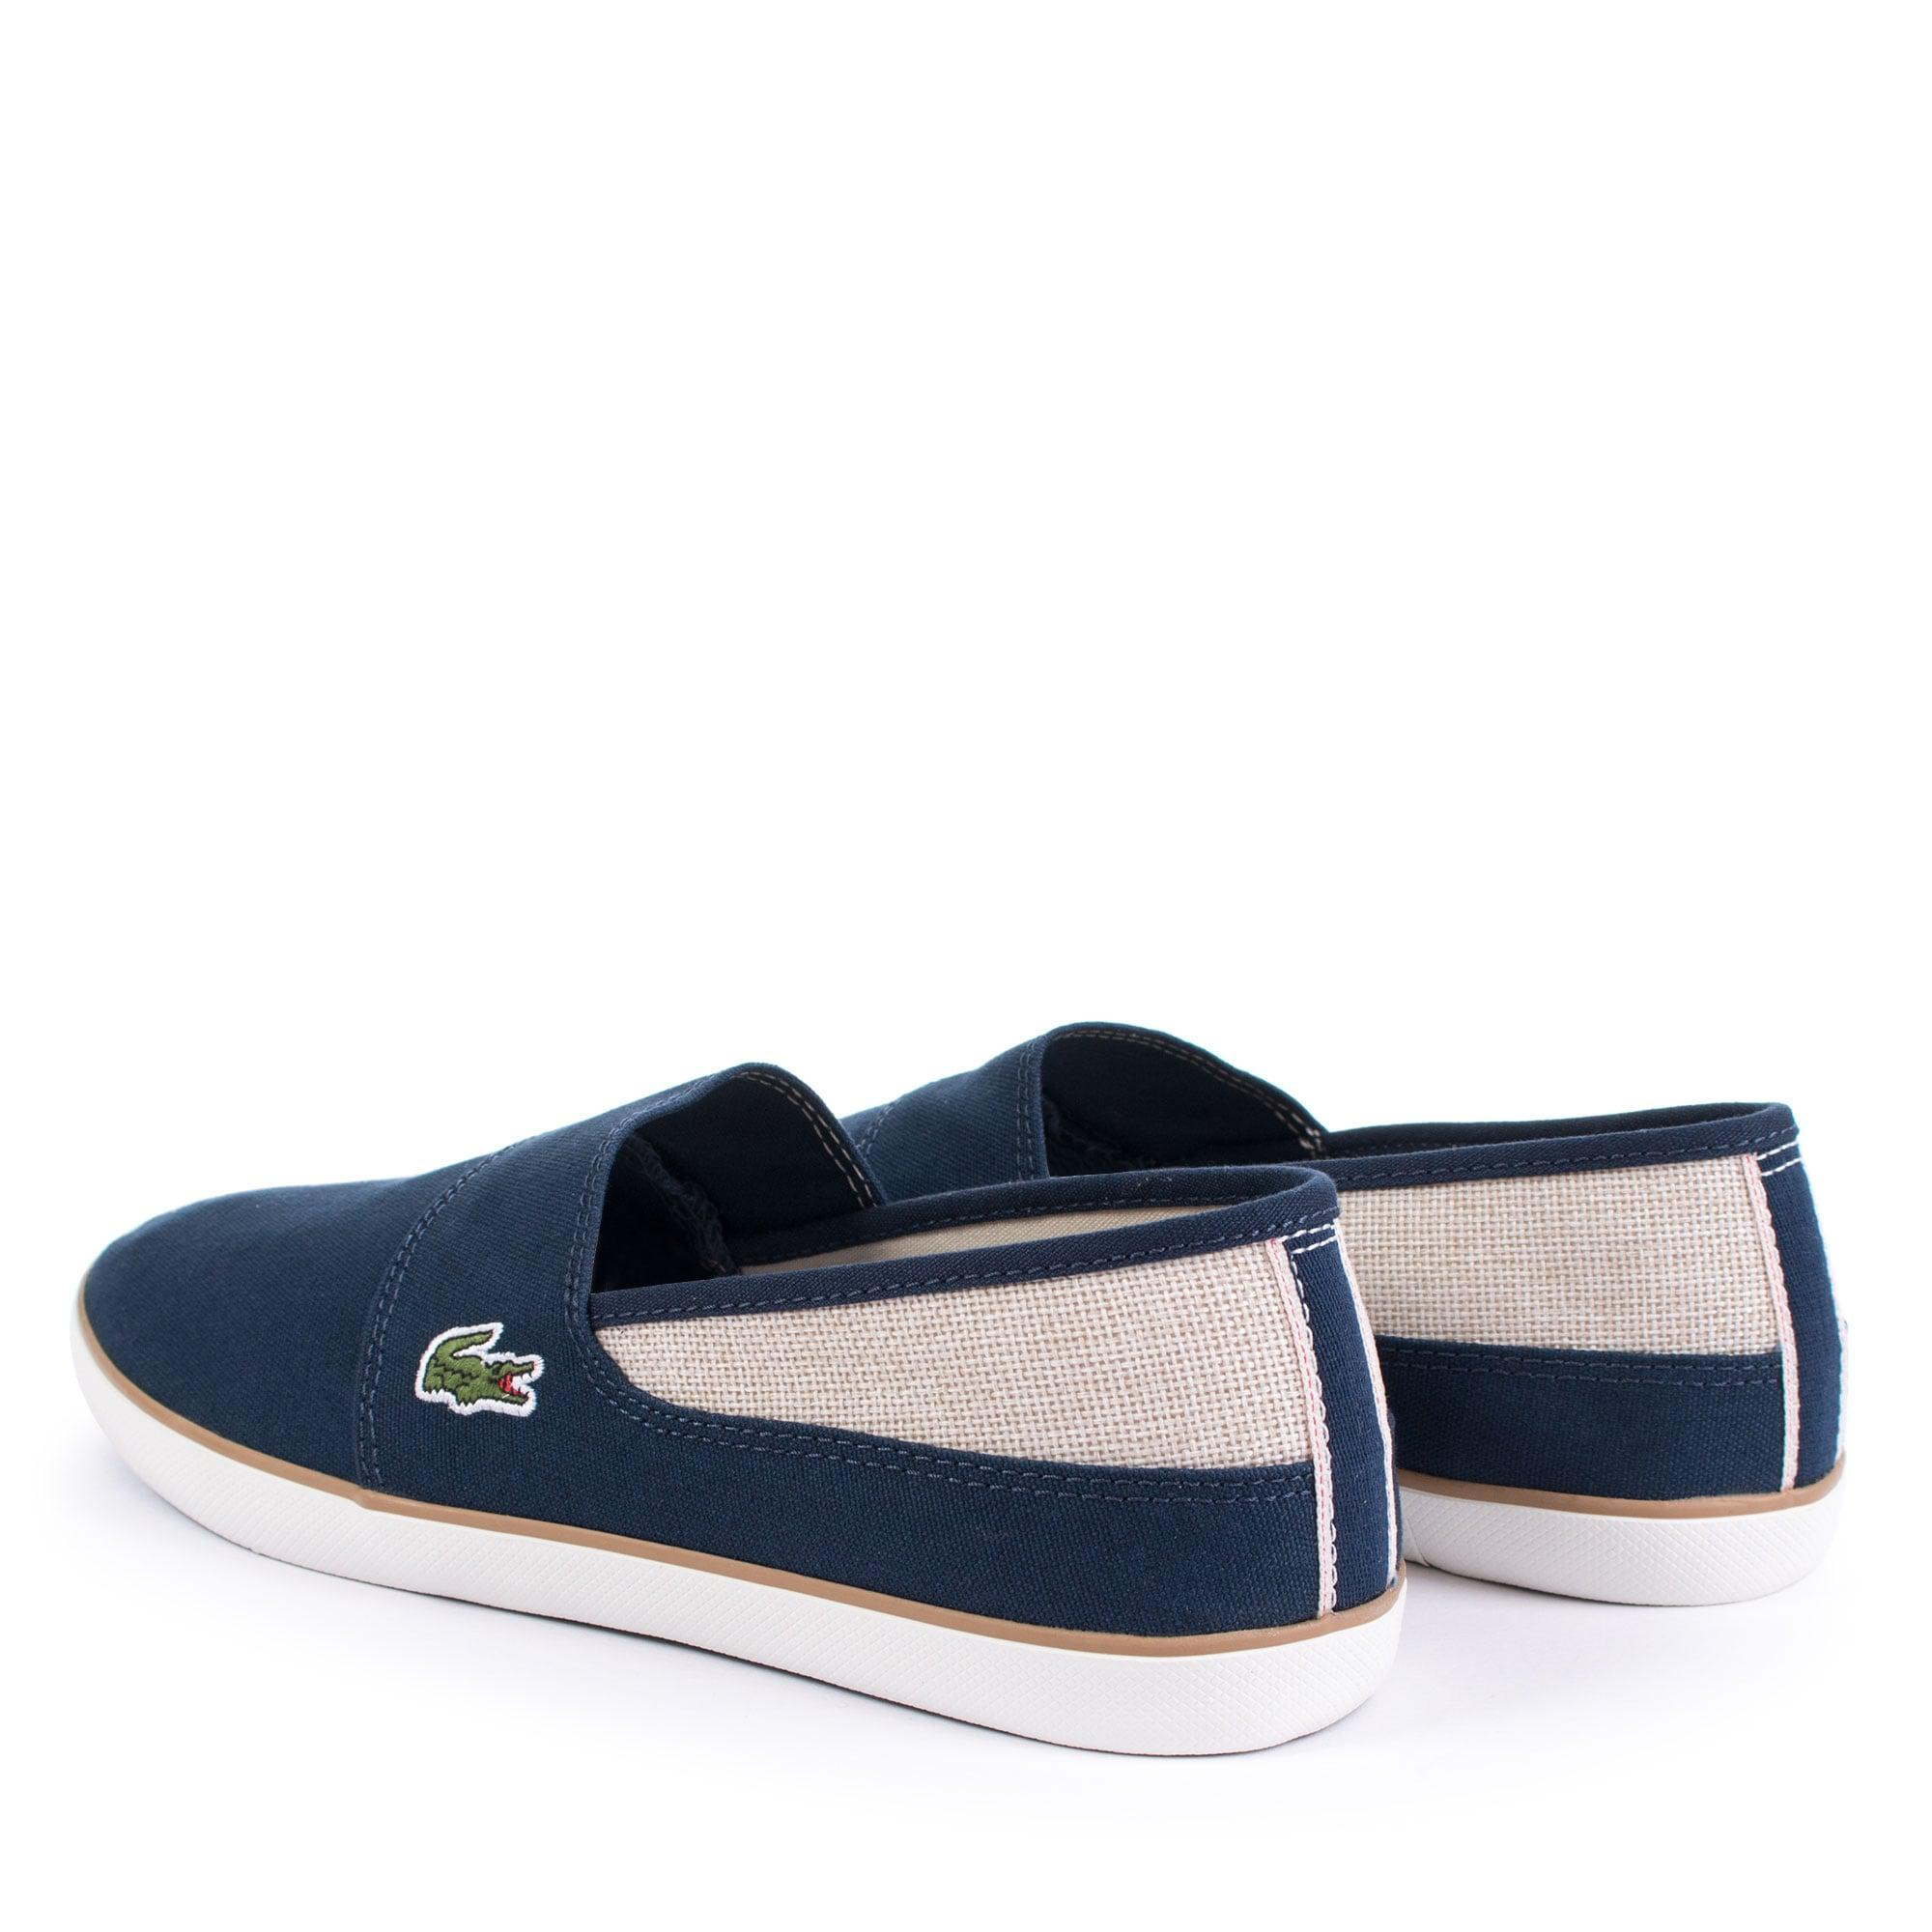 3dc9b8c5e430 Lacoste Marice 218 1 Cam Canvas Slip Ons in Blue for Men - Lyst